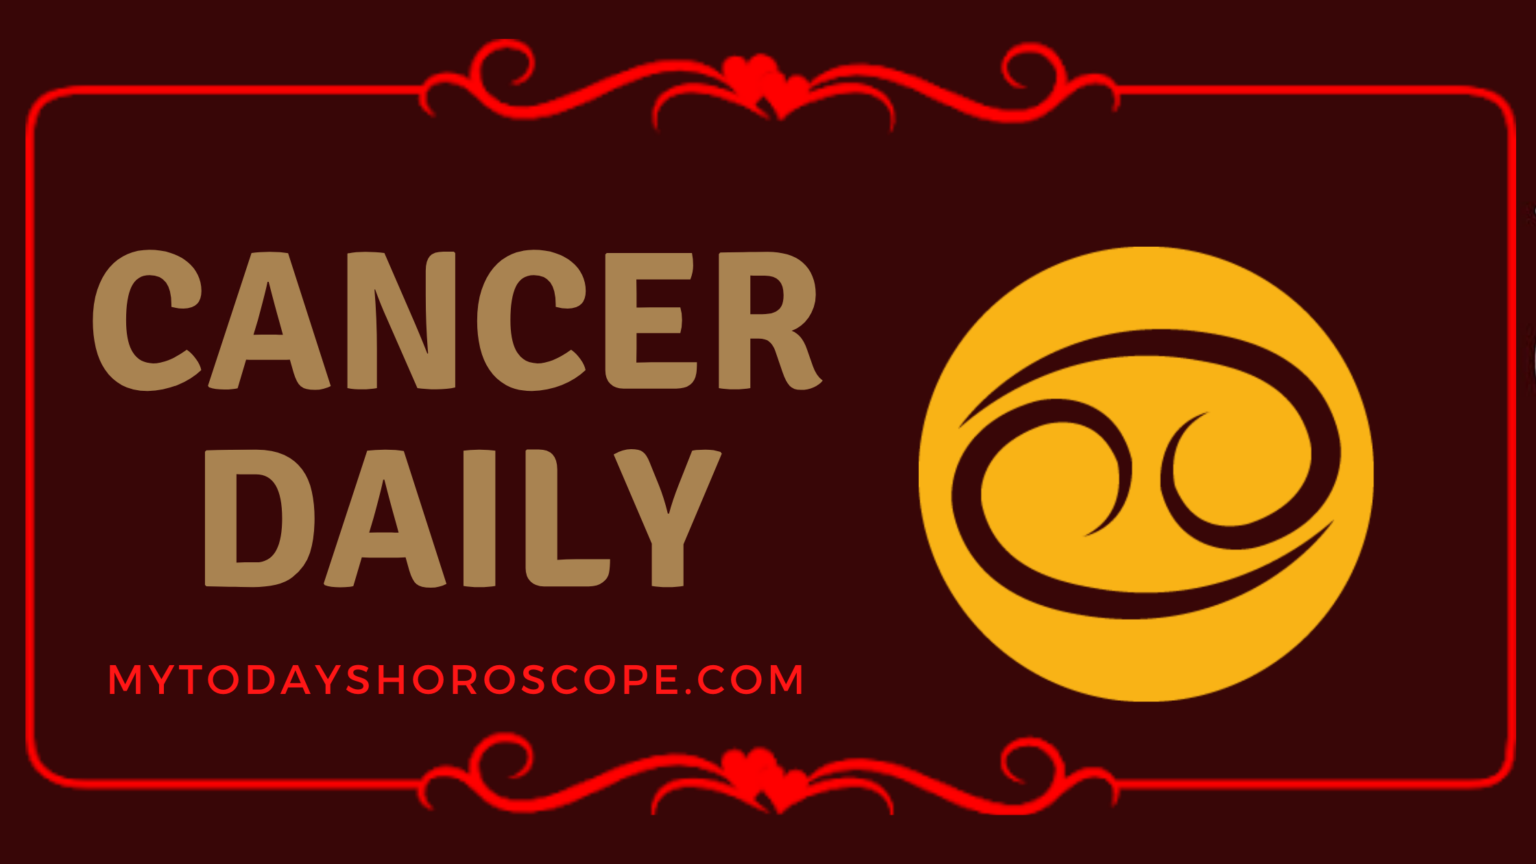 Cancer Daily